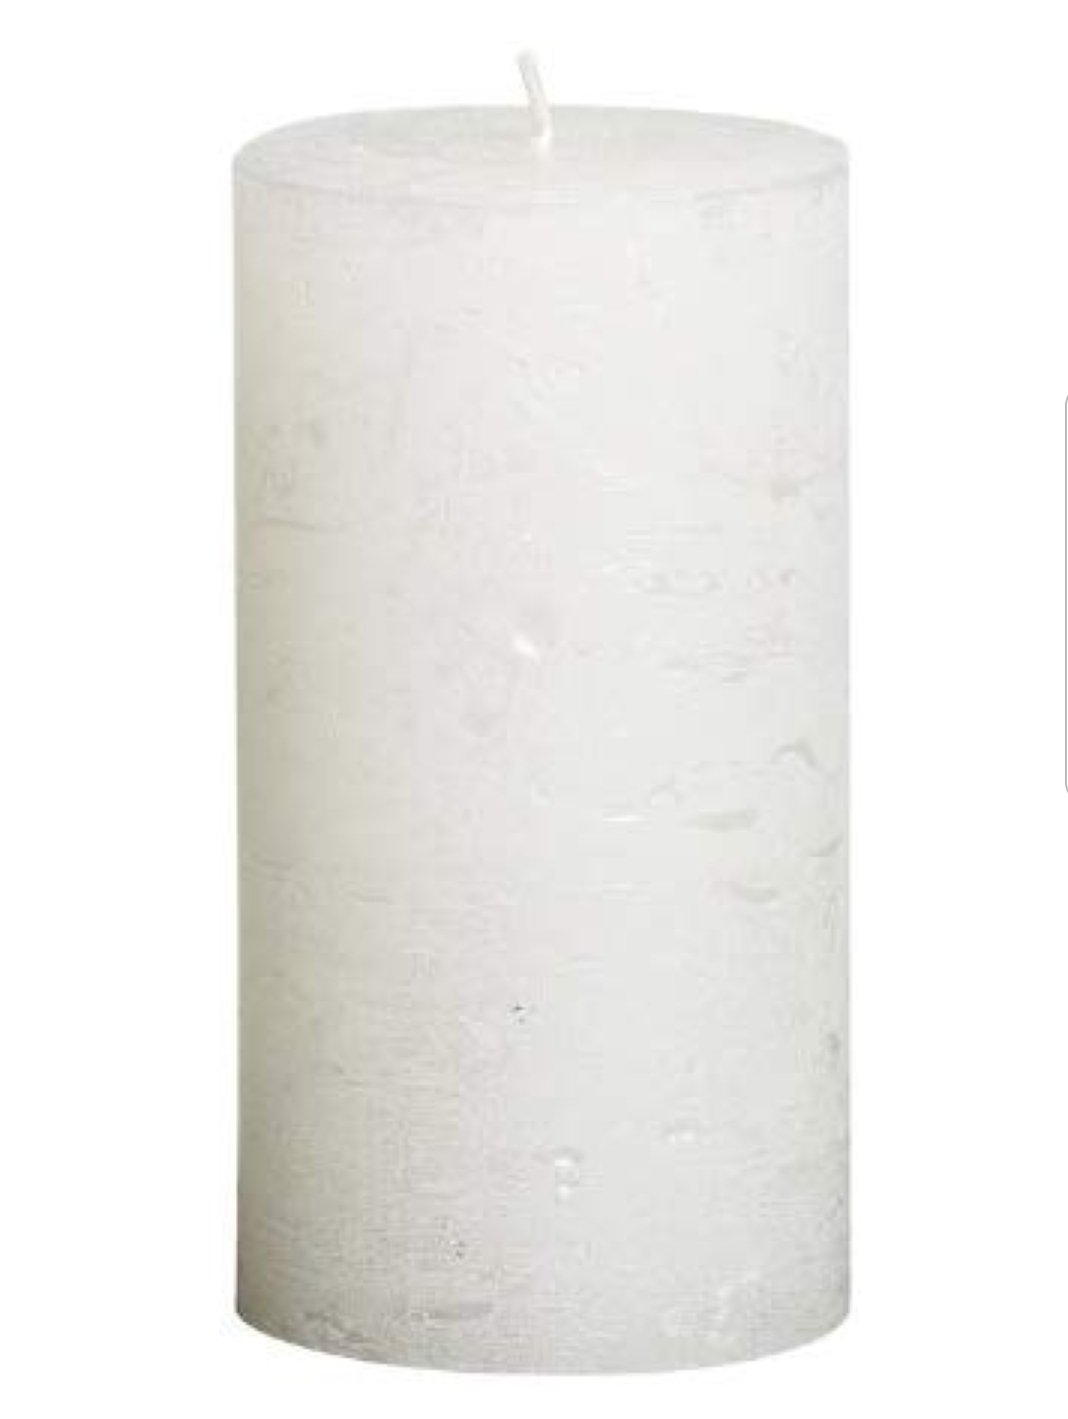 Rustic Pillar Candles - White Metallic Rustic Pillar Bolsius Medium 130x68mm